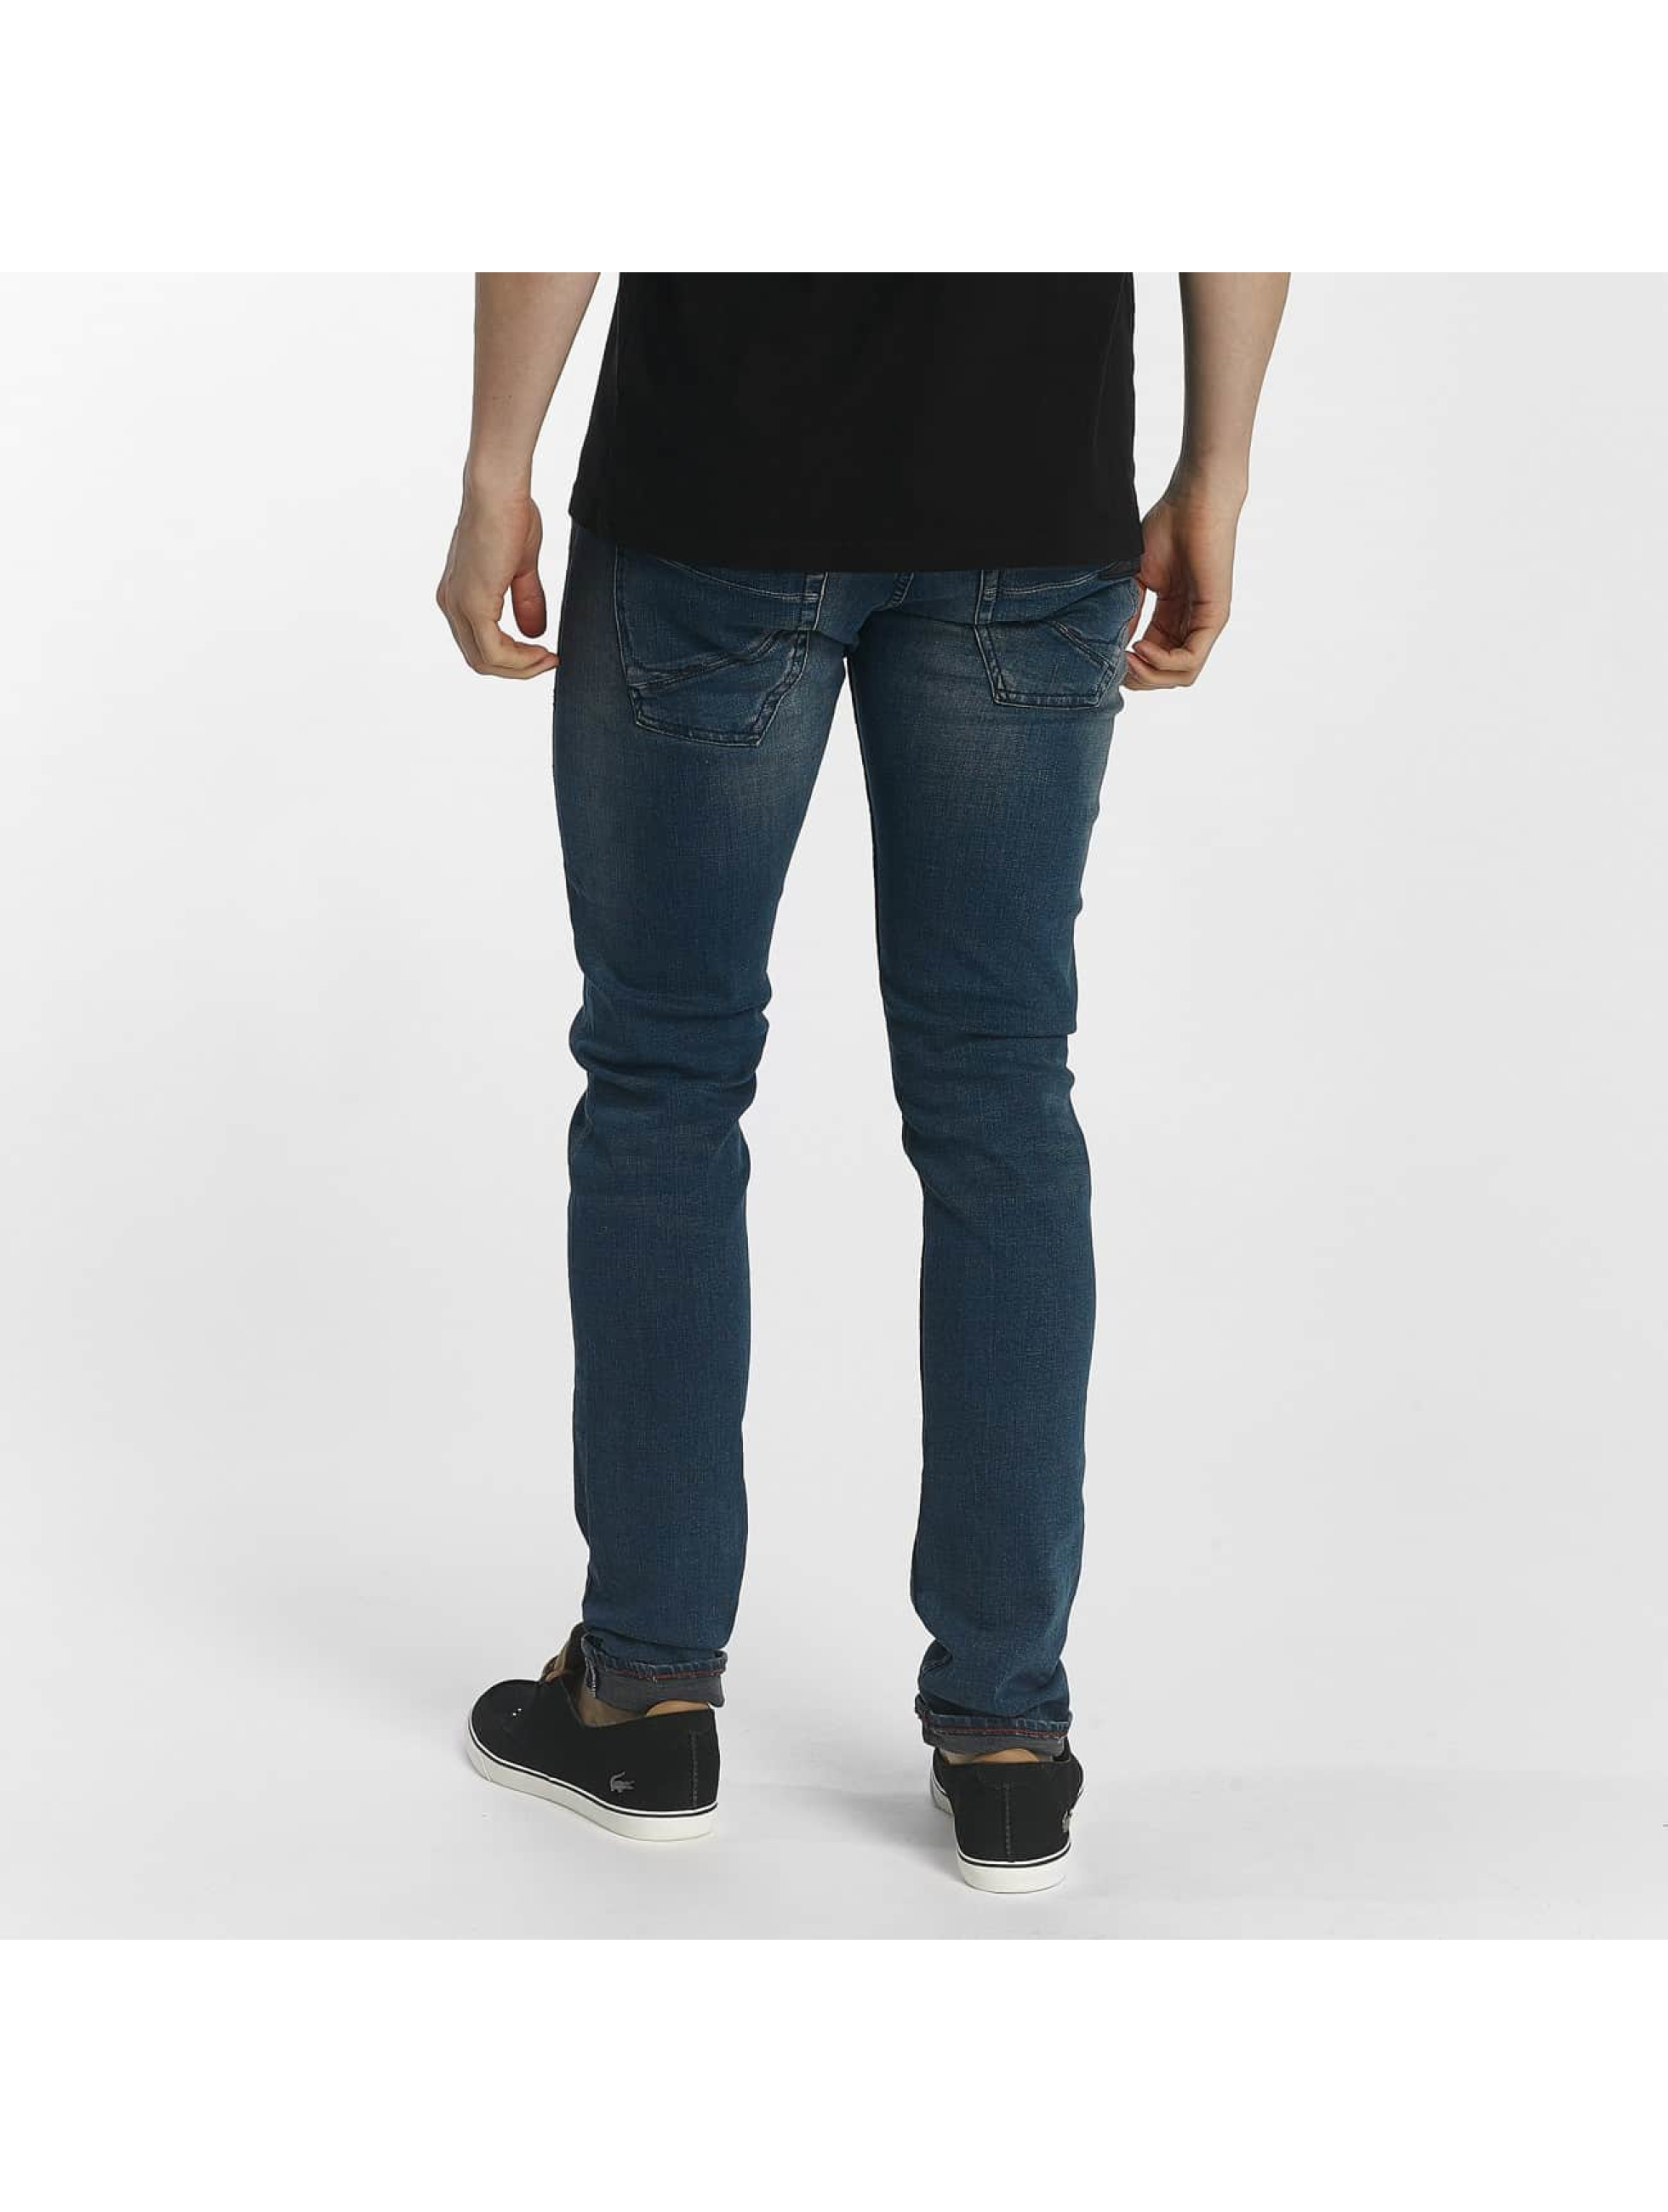 Le Temps Des Cerises Slim Fit Jeans 700/11 Basic black